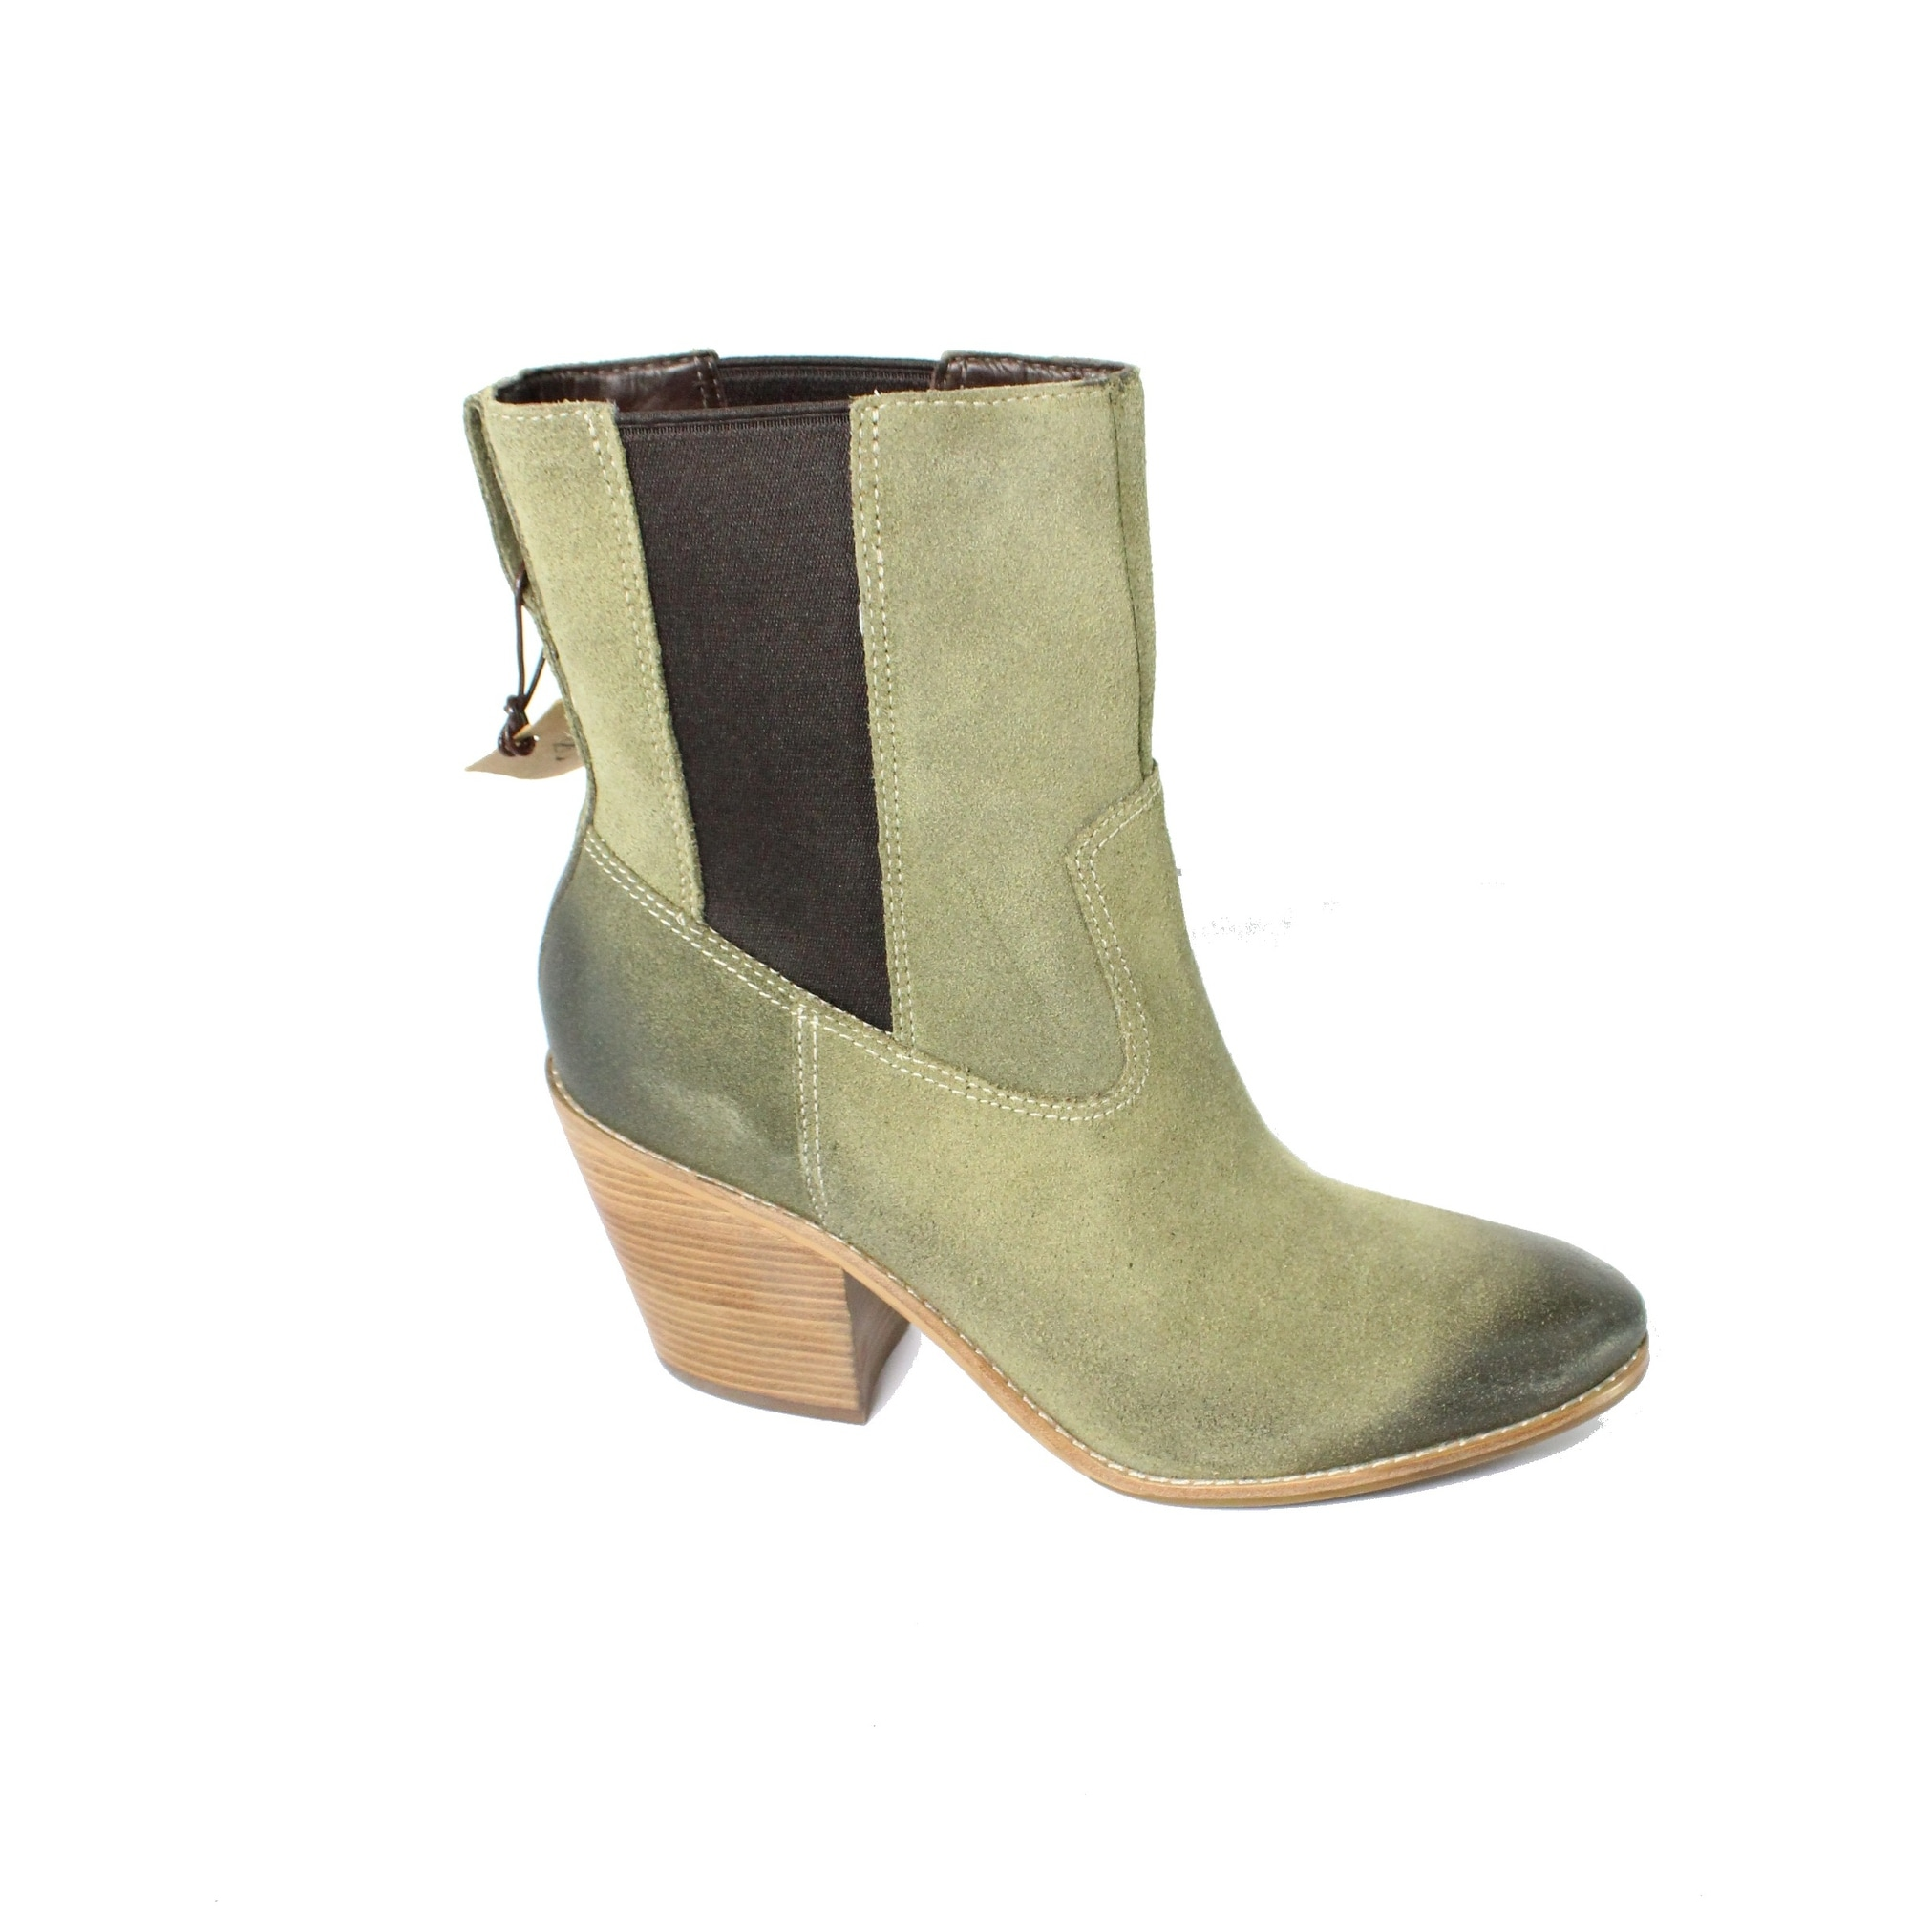 Cole Haan NEW Green Graham Short Shoes 10M Ankle Leather Boots - Free  Shipping Today - Overstock.com - 25771243